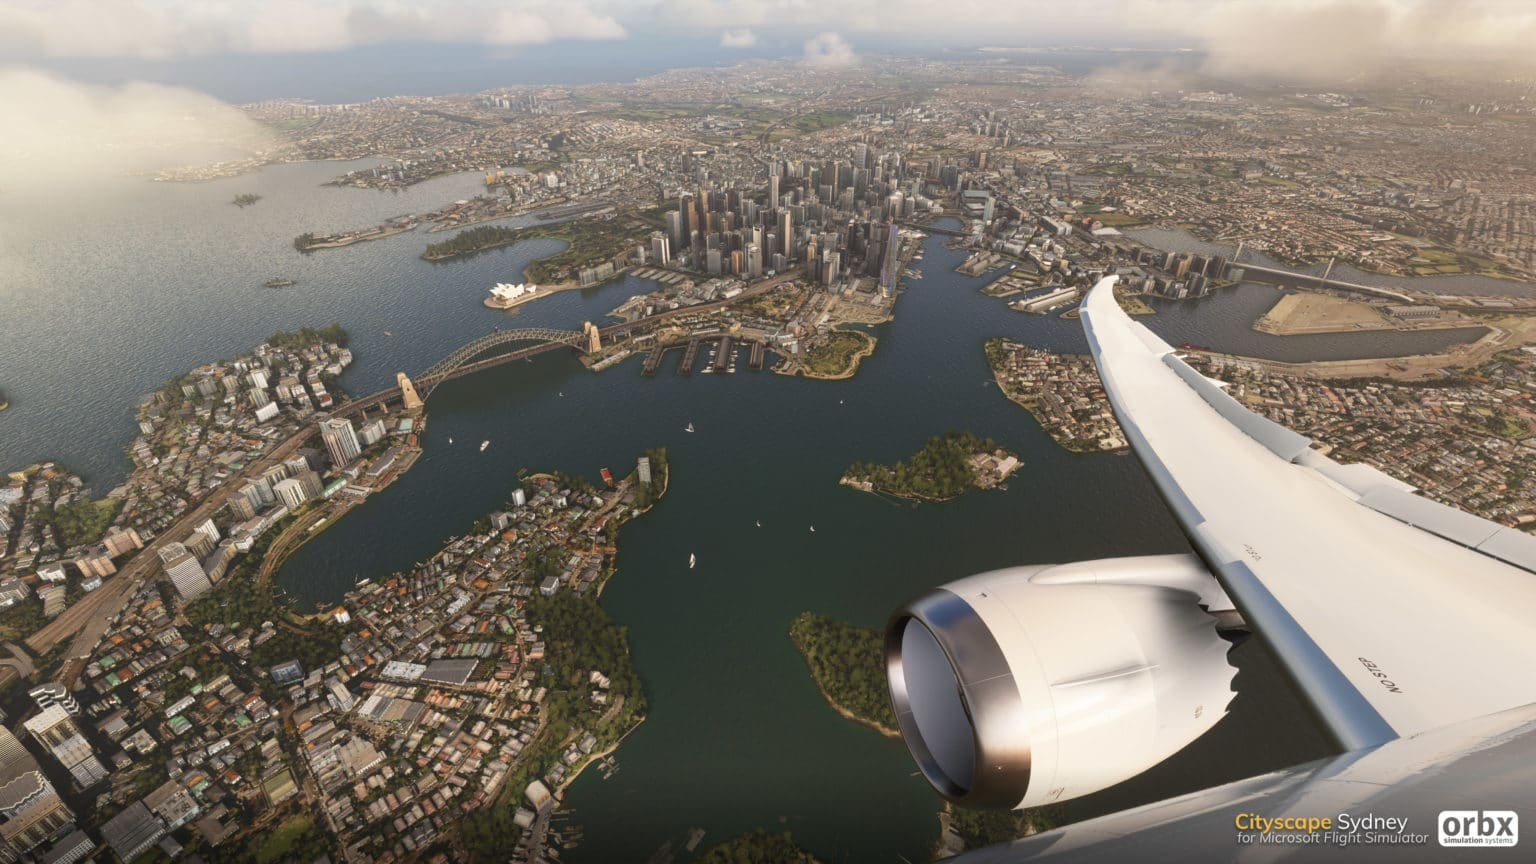 Orbx Ctyscape Sydney for MSFS - 18